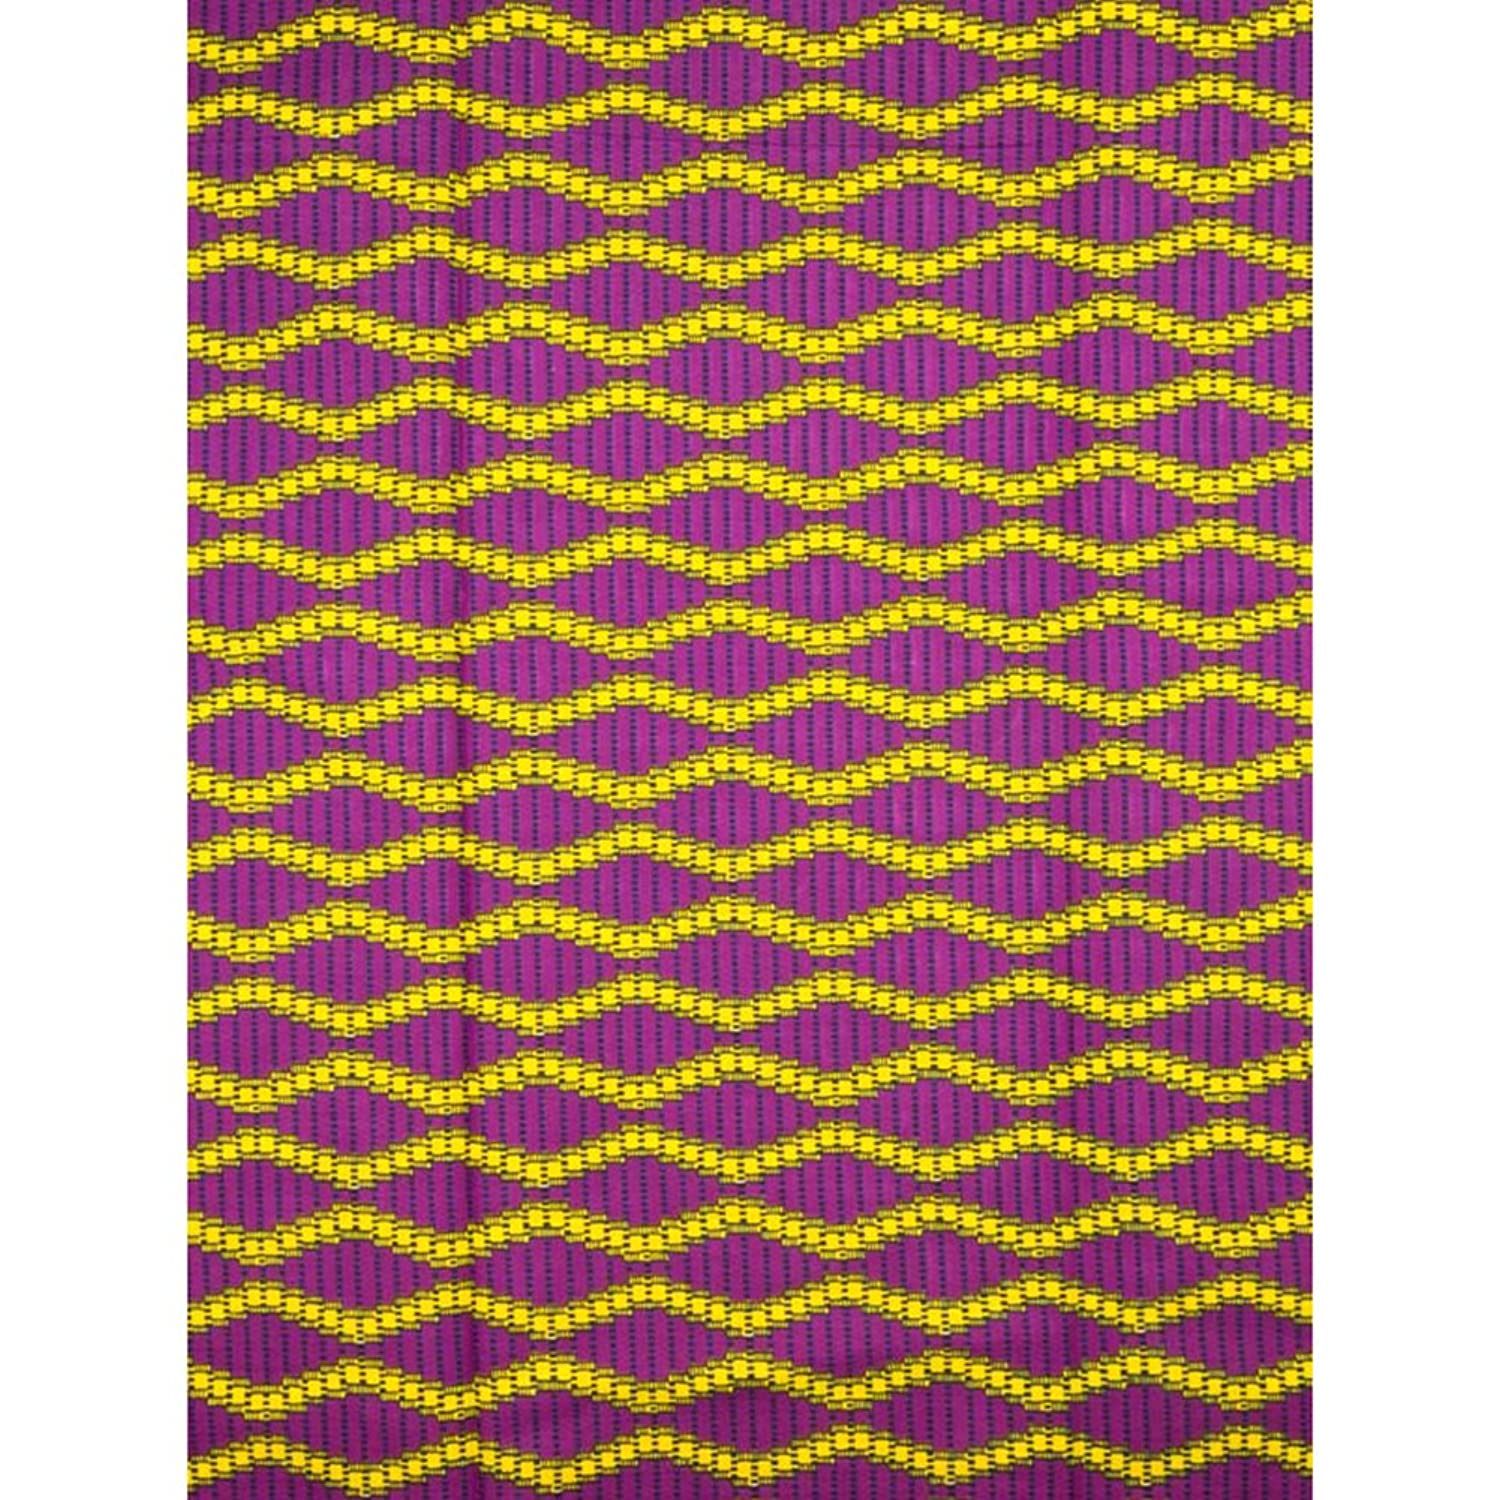 Premier Wholesale African Products Real Wax Purple Yellow Chain Designs rw603708